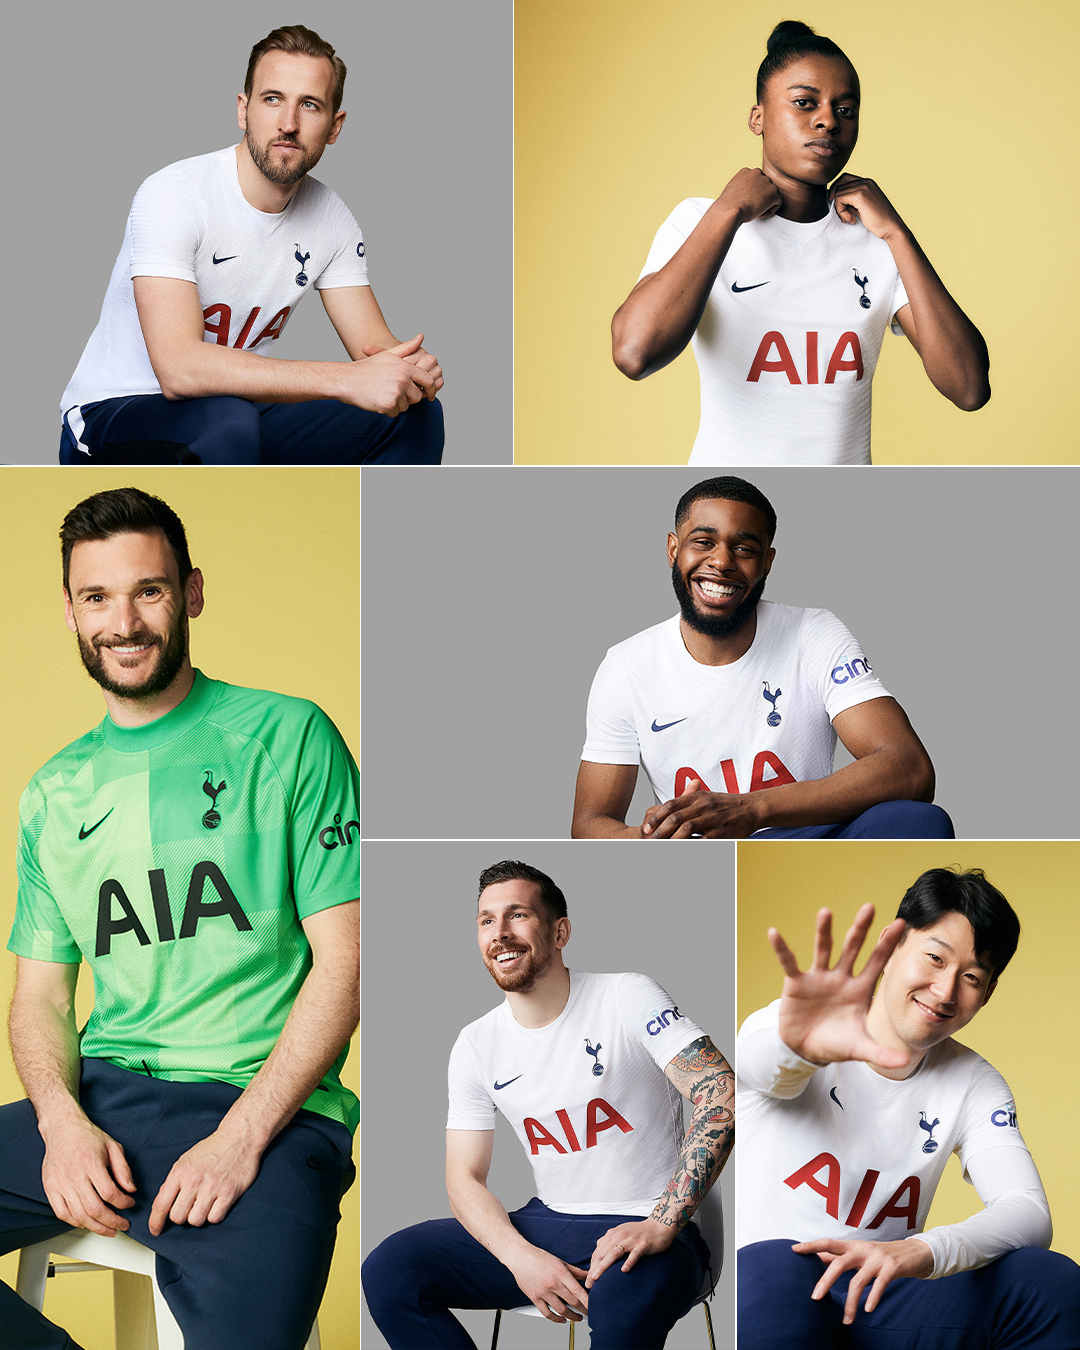 Premier League Kits 2021 22 New Home And Away Designs From Liverpool Arsenal Chelsea Tottenham Everton And More Football News Sky Sports